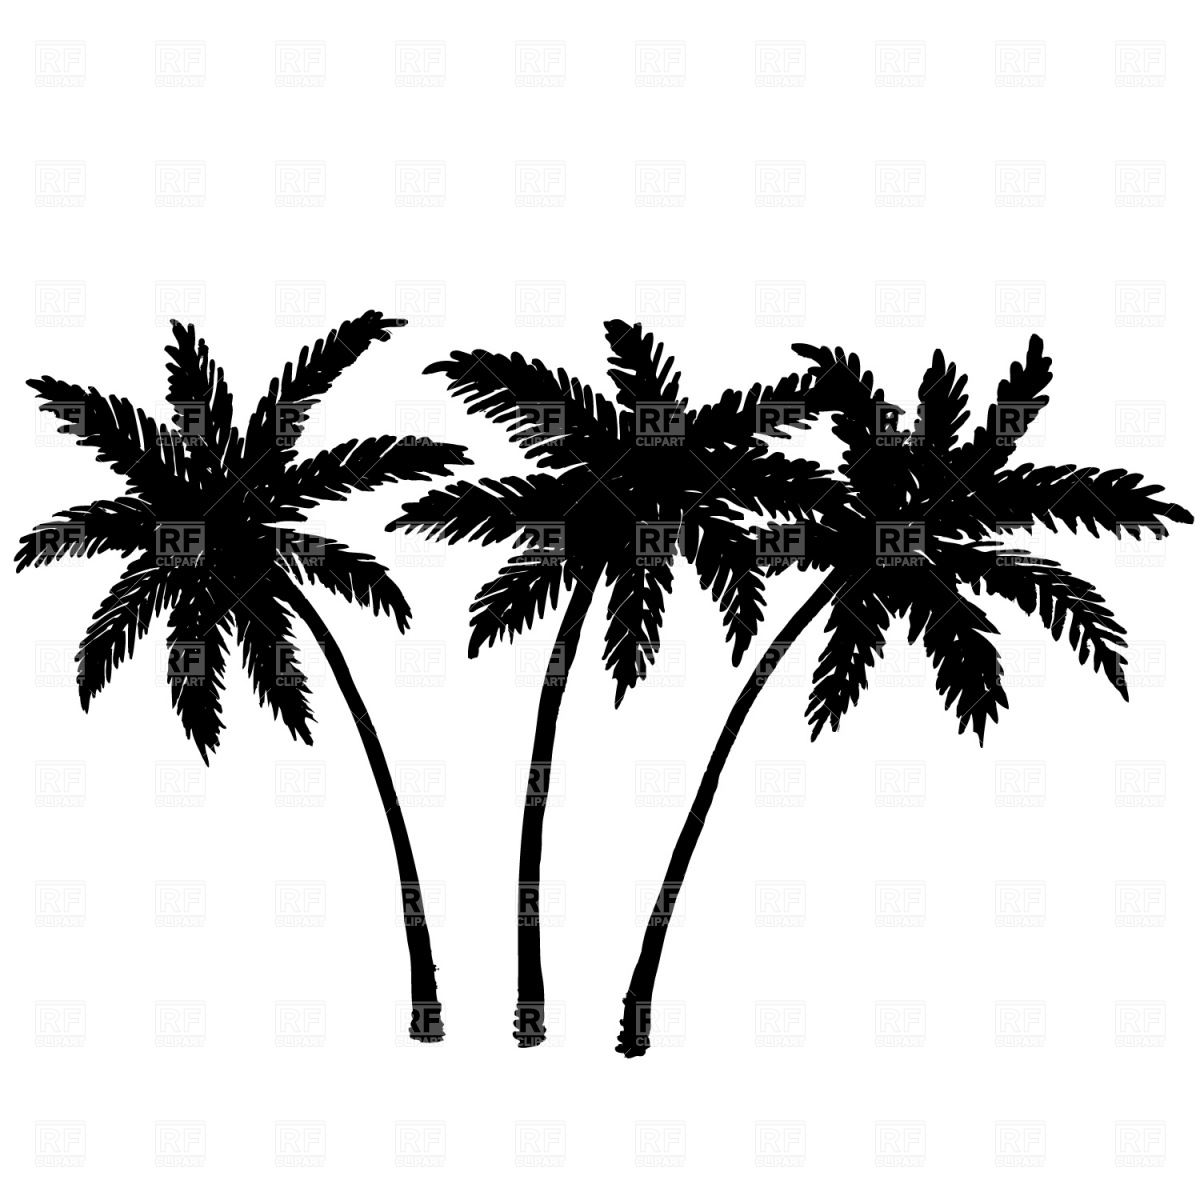 Cloudless clipart jpg freeuse library Two palm trees and cloudless sky, 503, Travel, download free - Clip ... jpg freeuse library